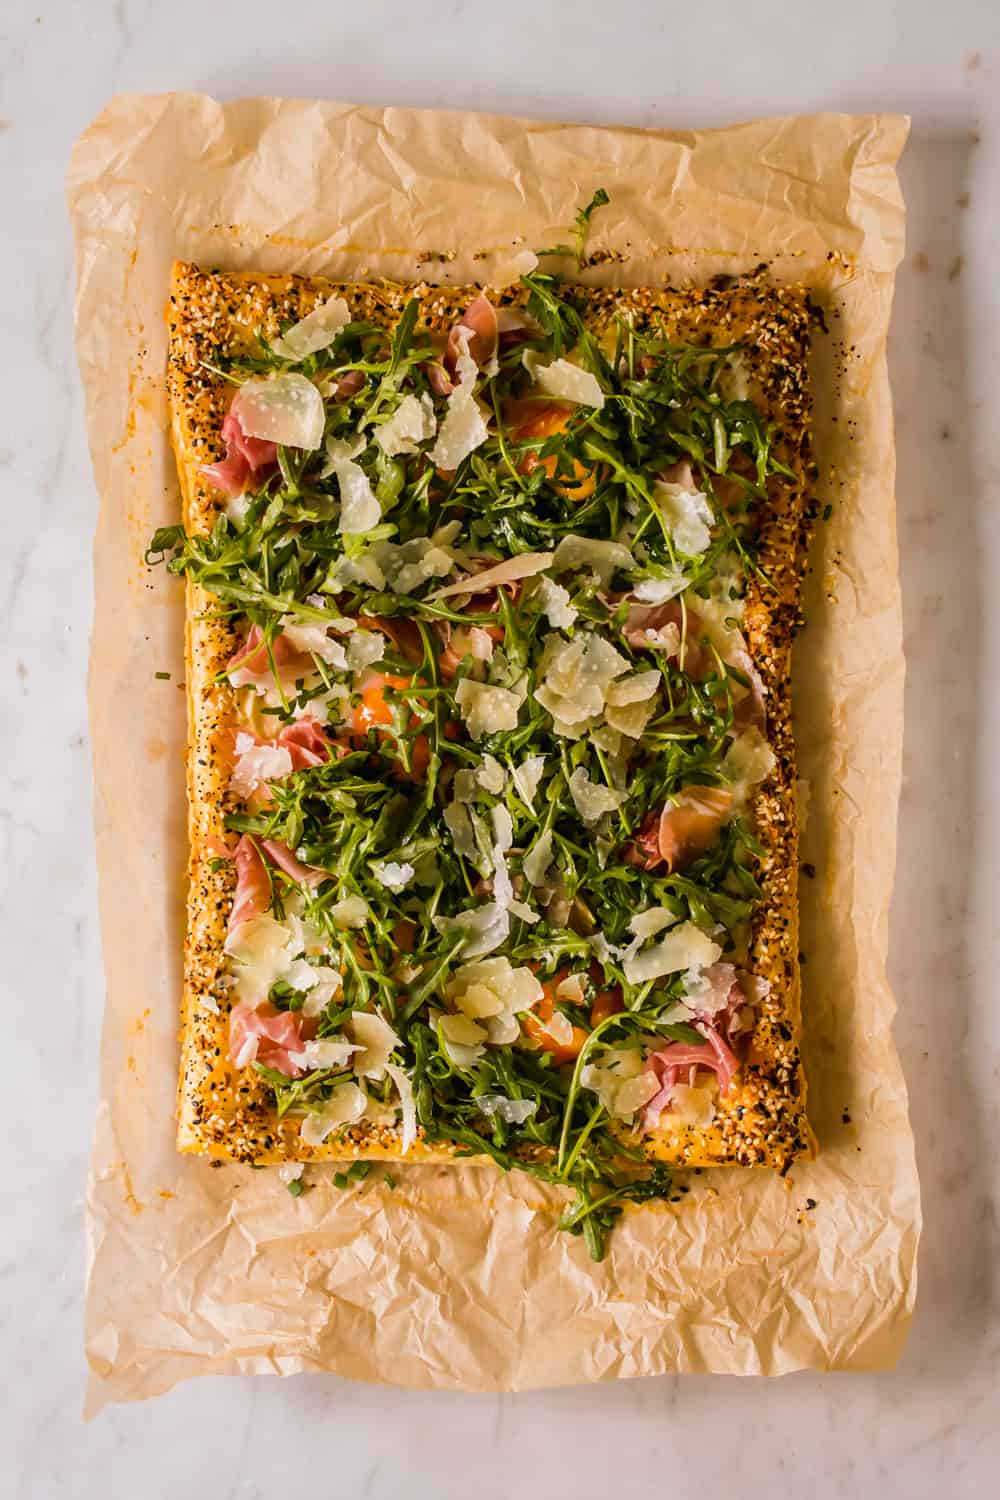 a large baked egg tart on parchment paper topped with prosciutto, arugula, and cheese